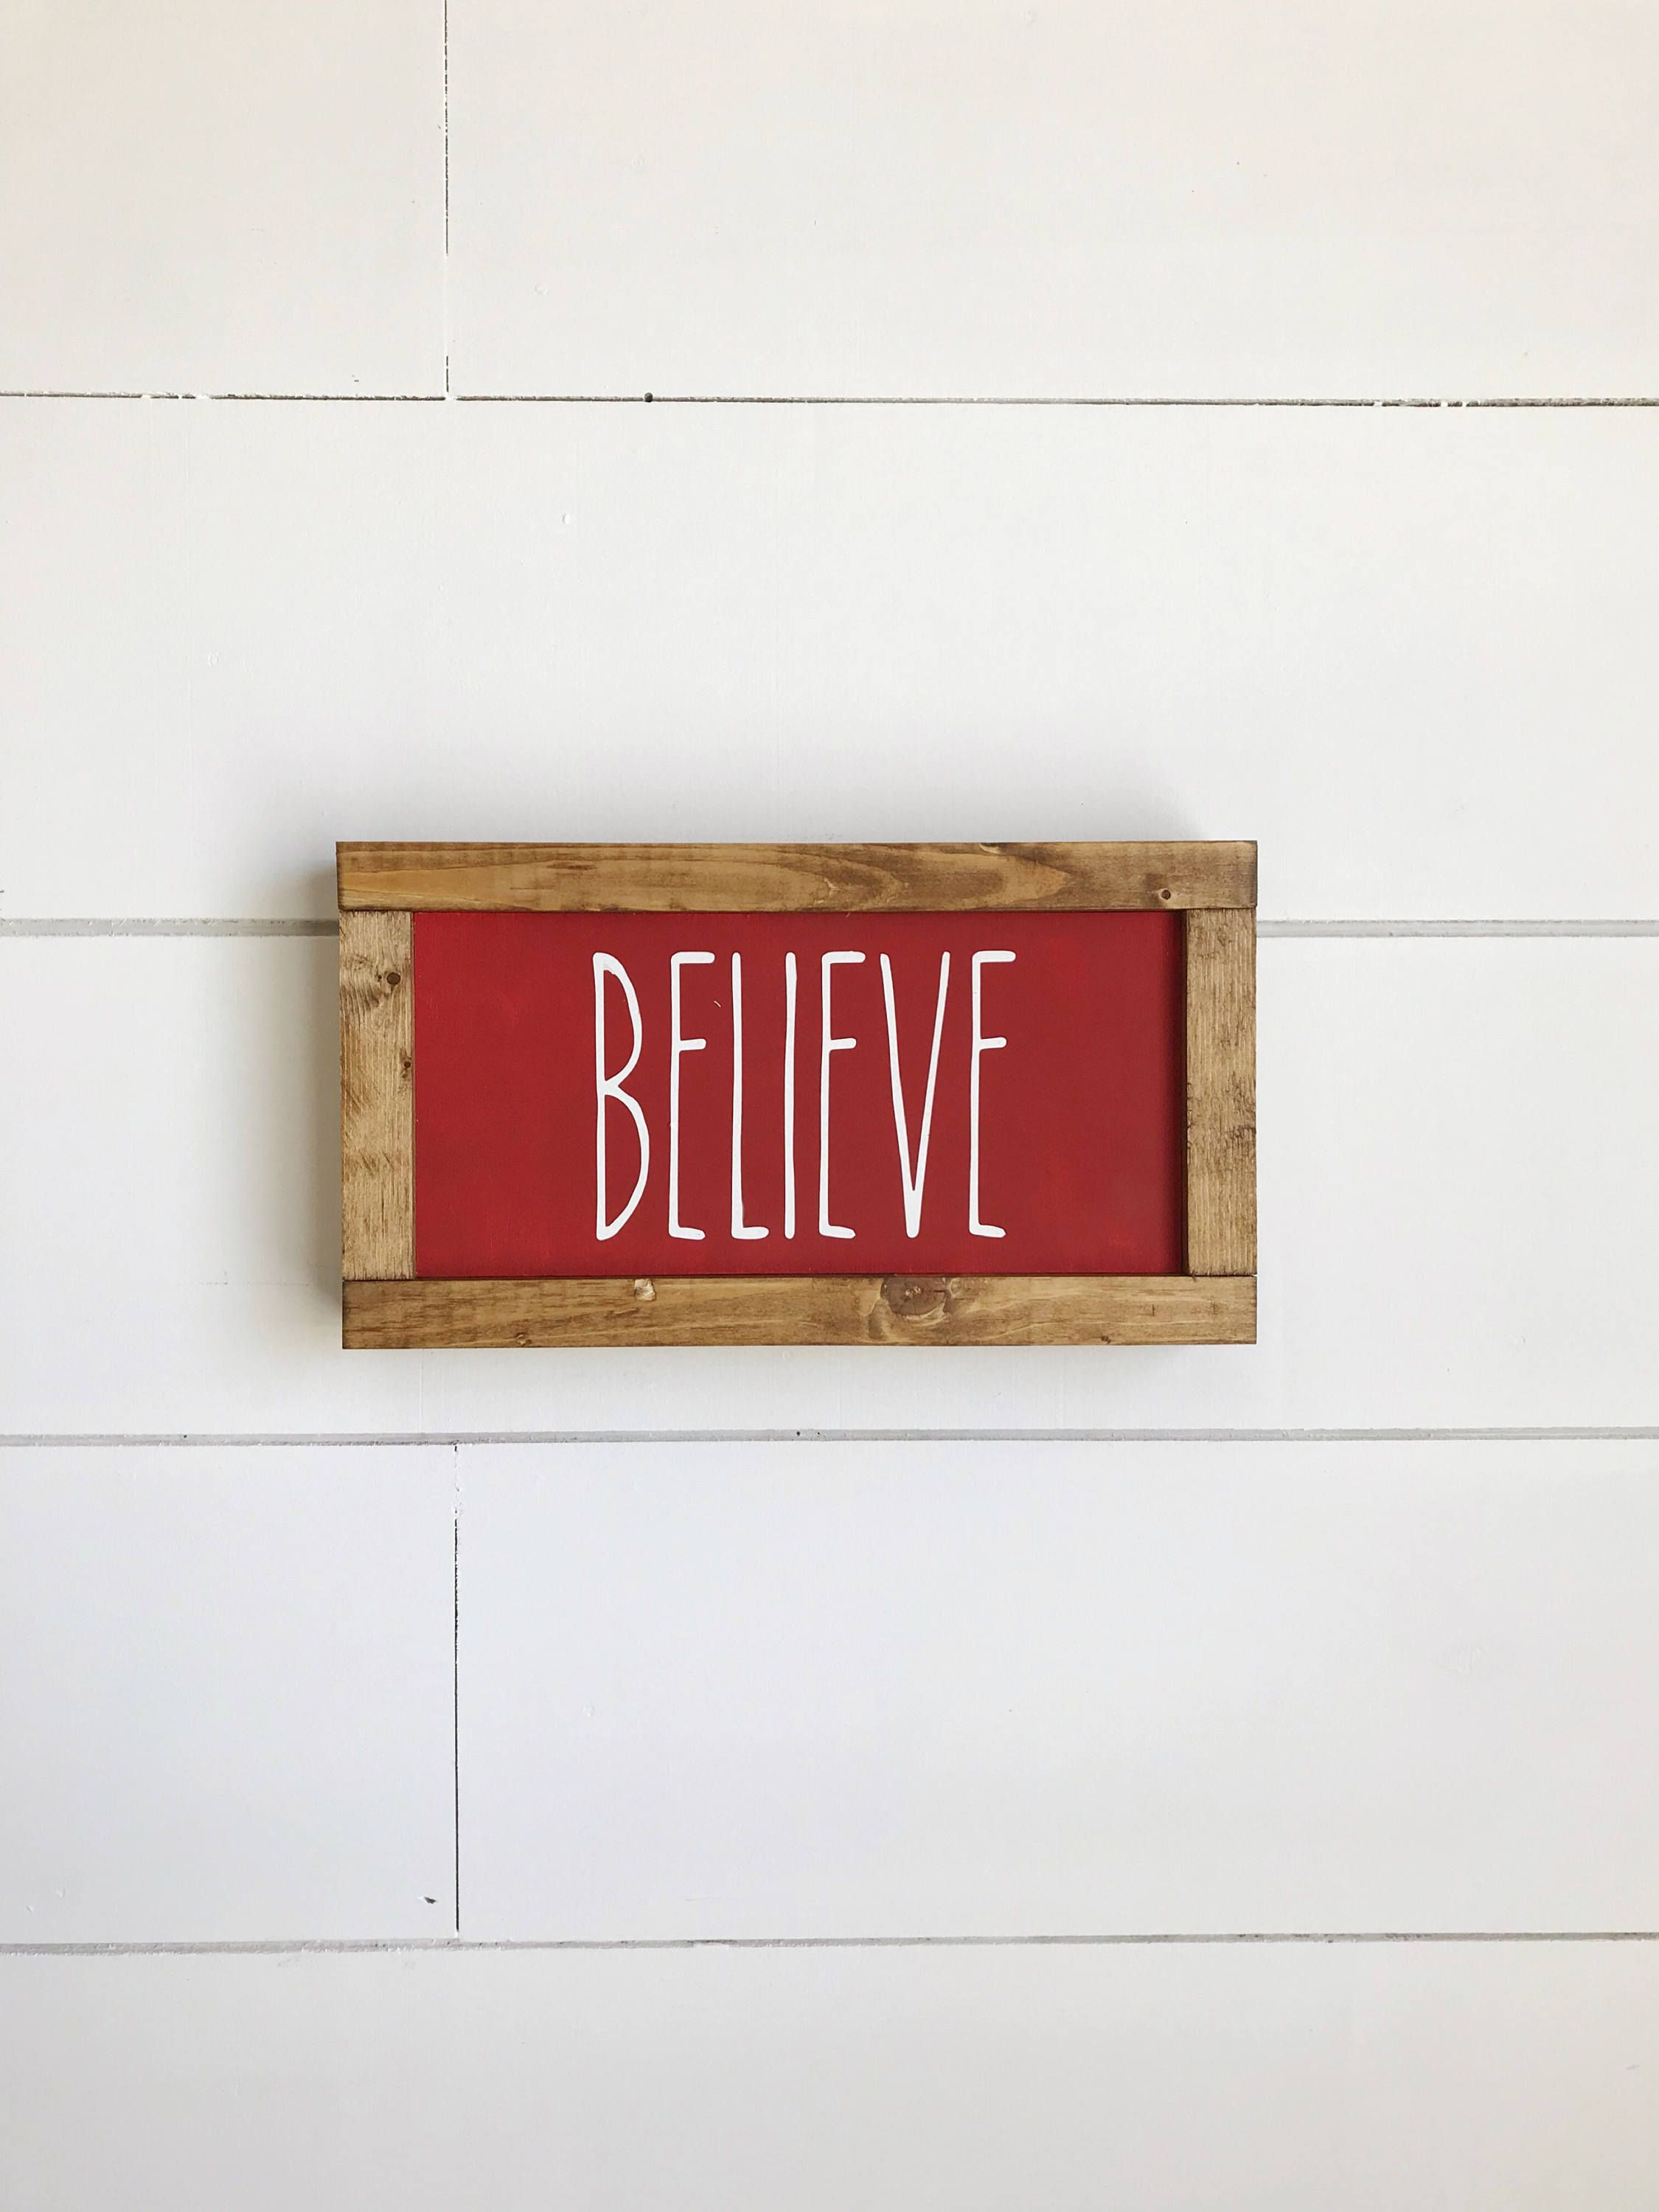 Believe Signs Decor Rae Dunn Inspired Believe Believe Sign Christmas Decor Wood Signs